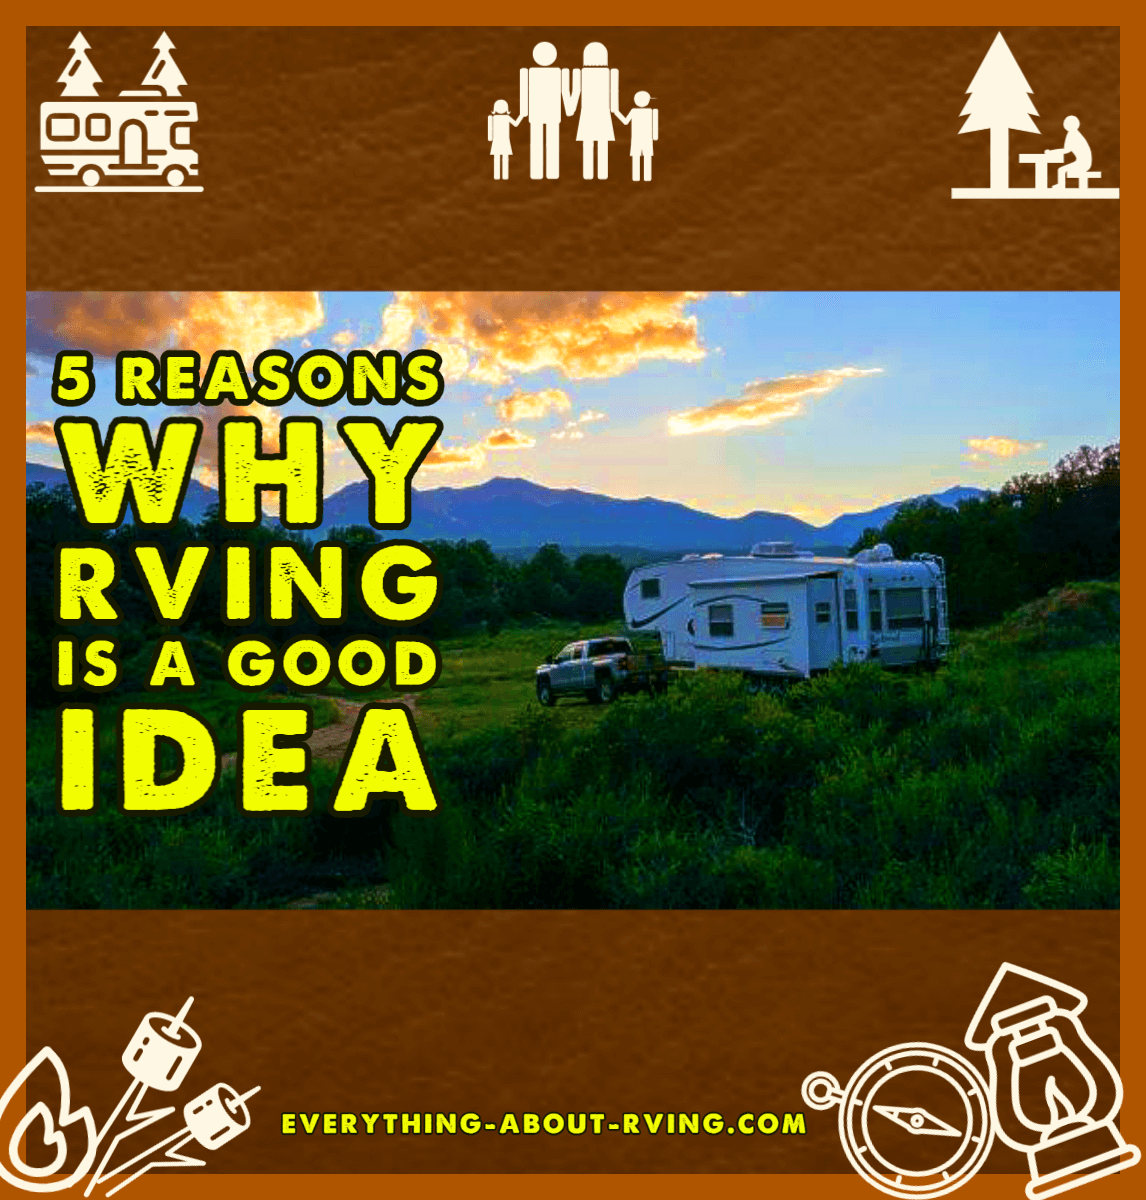 5 Reasons Why RVing Is a Good Idea